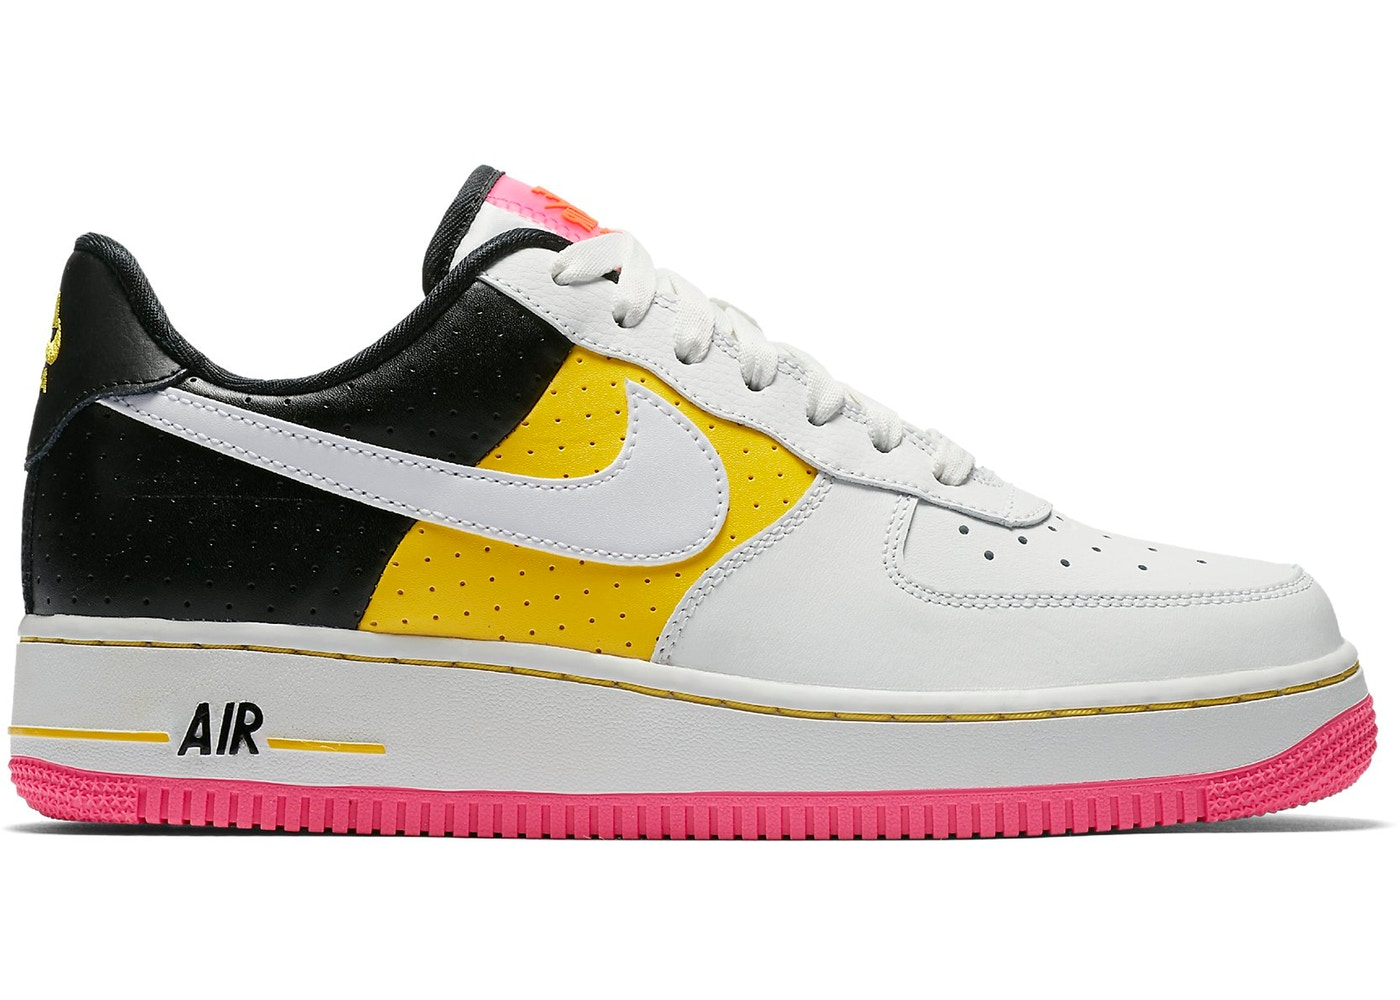 125826abd57b5 Sell. or Ask. Size: 11W. View All Bids. Air Force 1 Low Moto ...